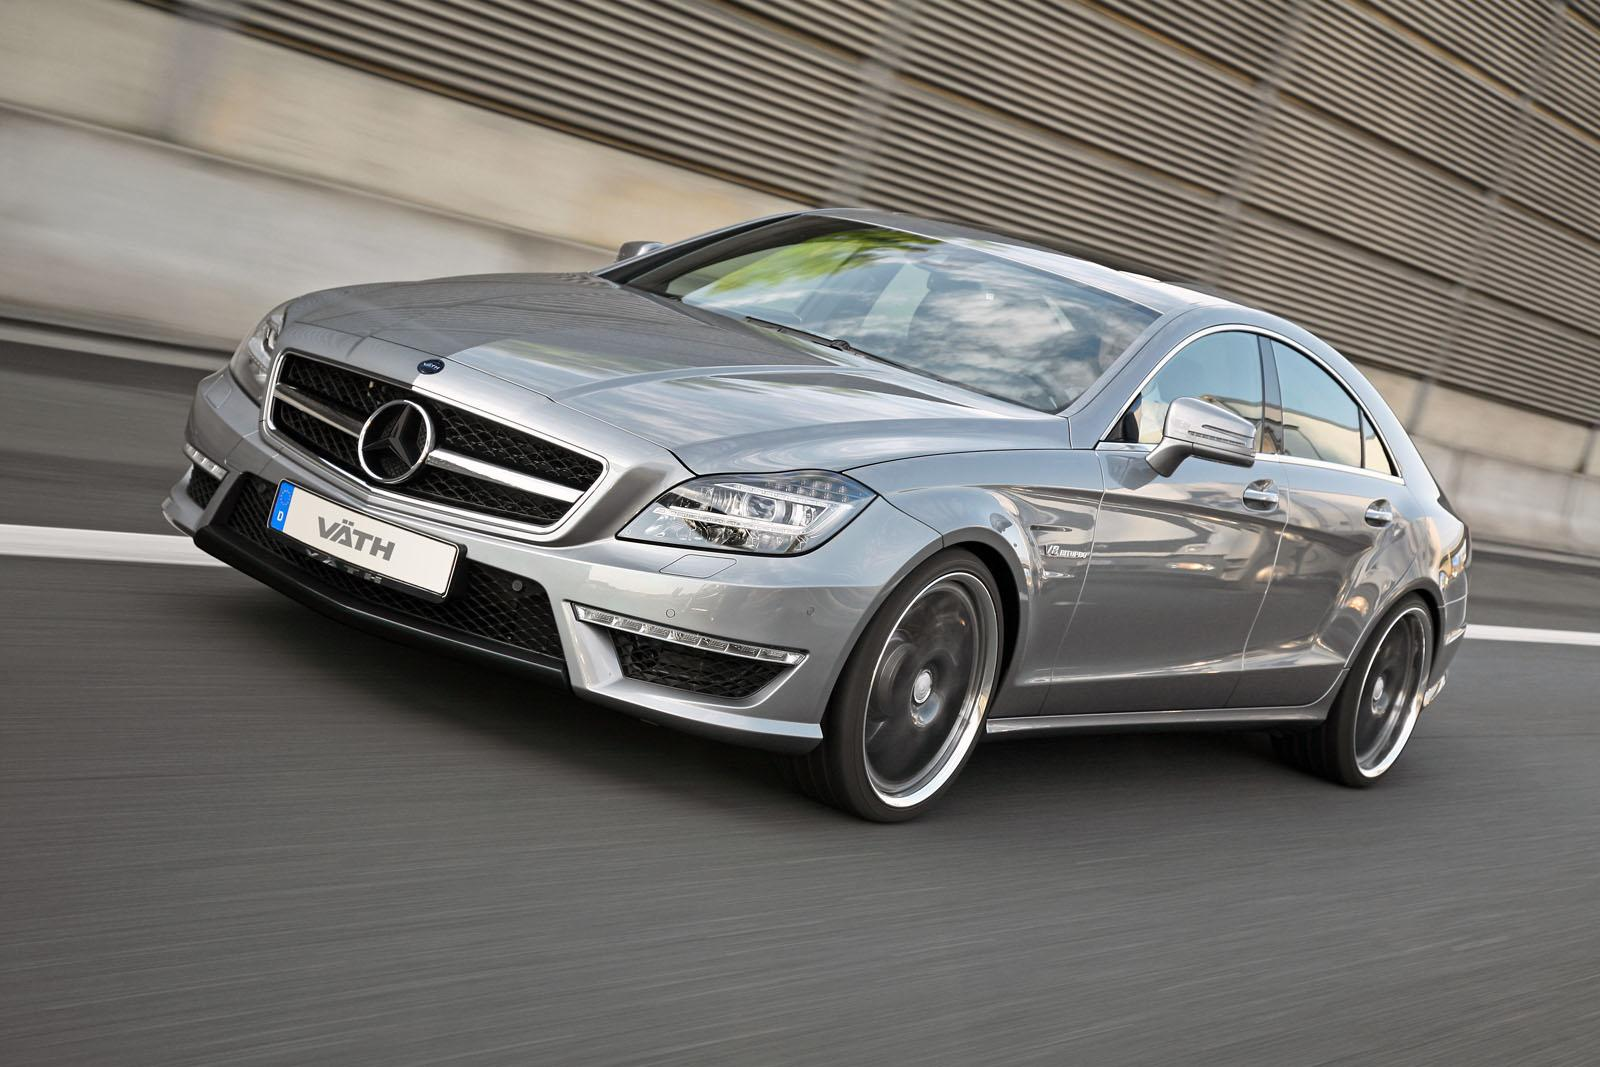 Vath mercedes benz cls 63 amg for Mercedes benz cl 63 amg price